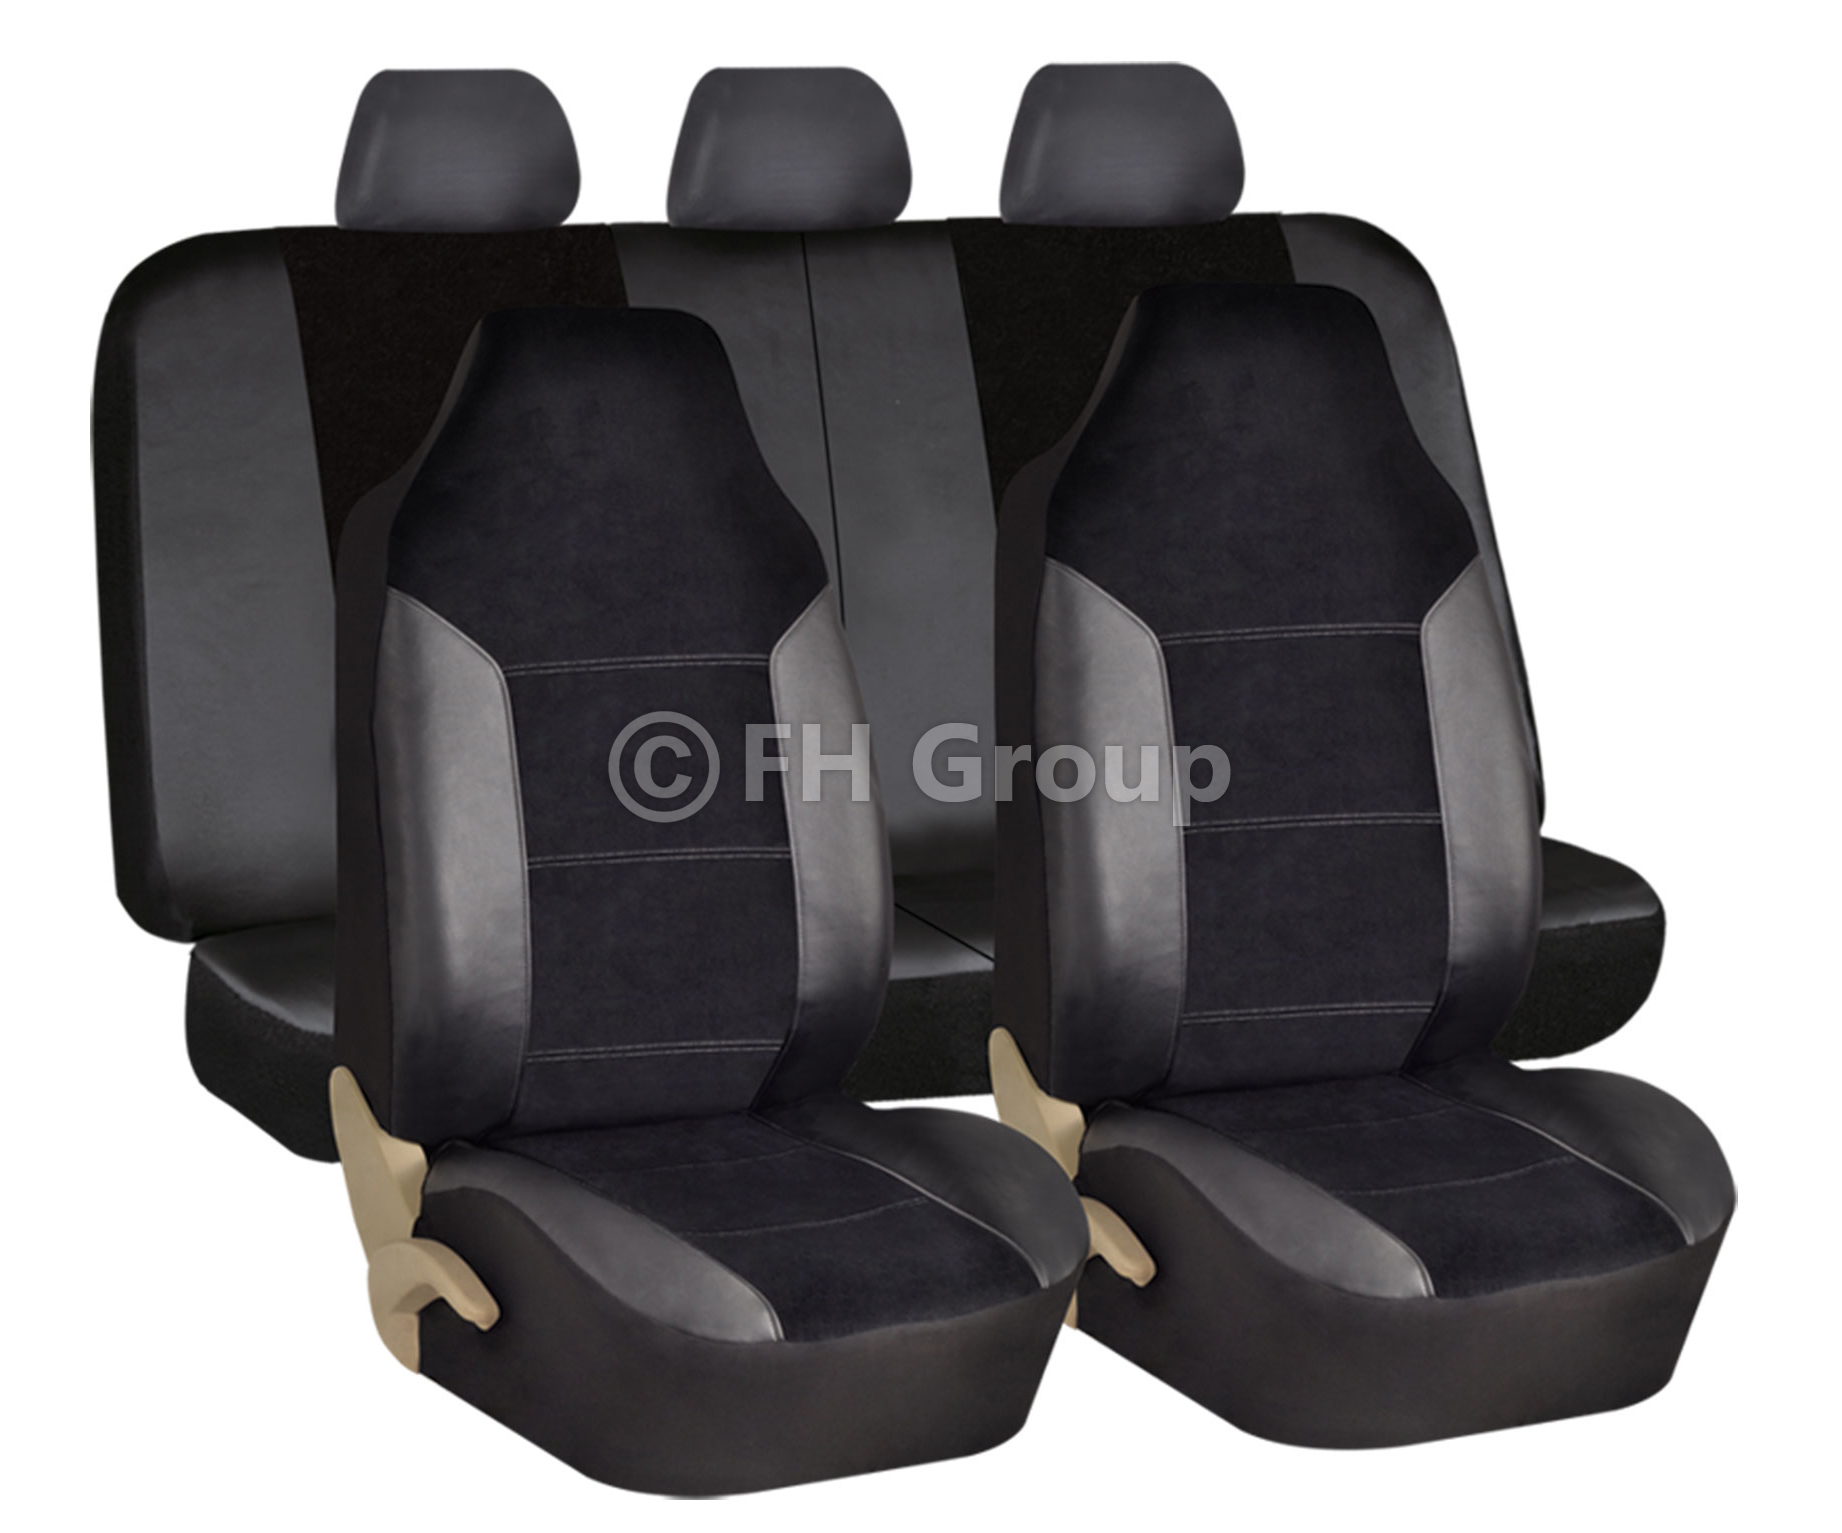 Rubber mats ebay - Leather Velour Car Seat Covers Luxury Sports With